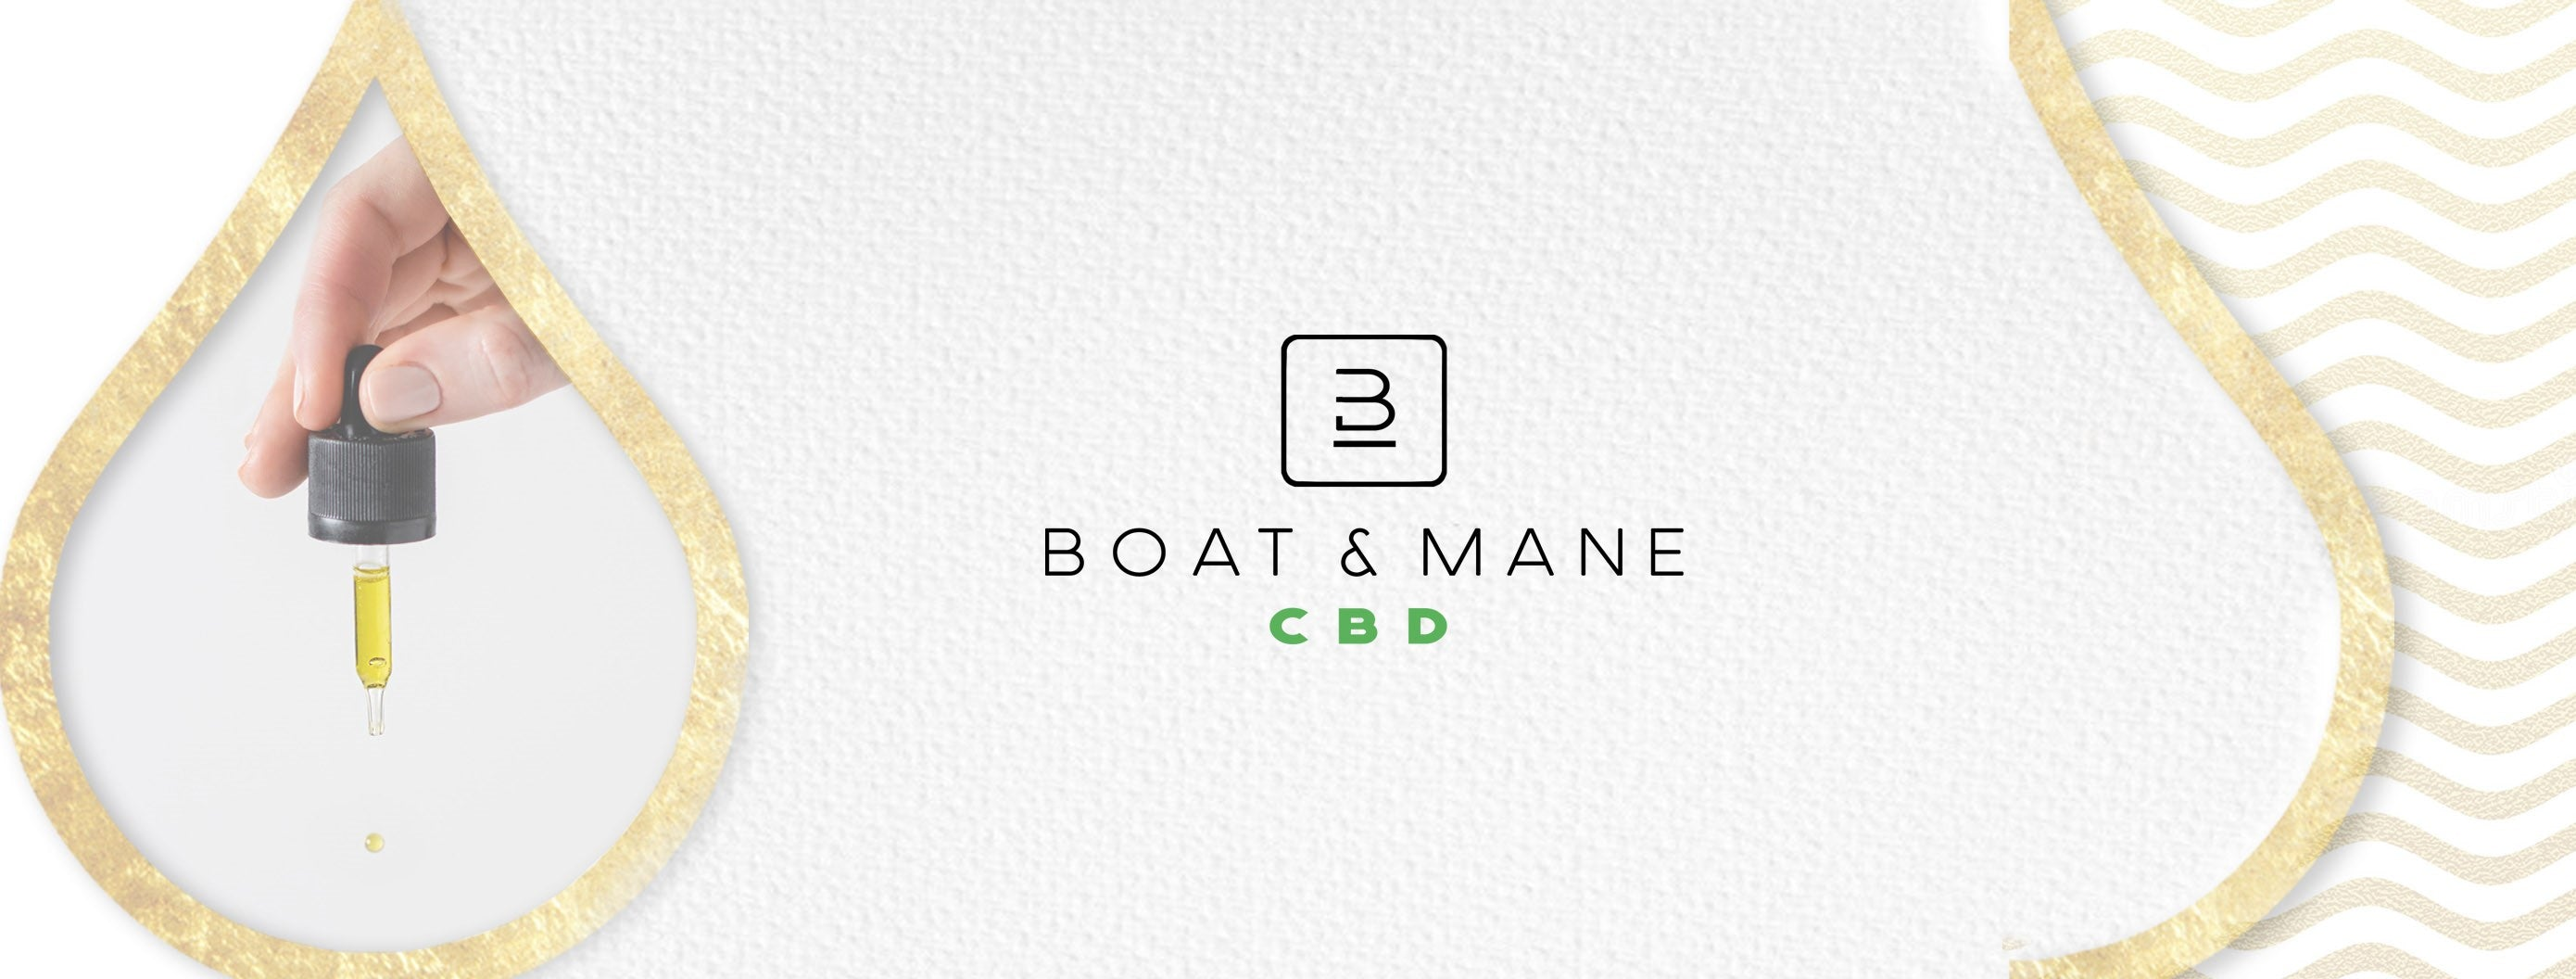 Boat and Mane CBD About Us